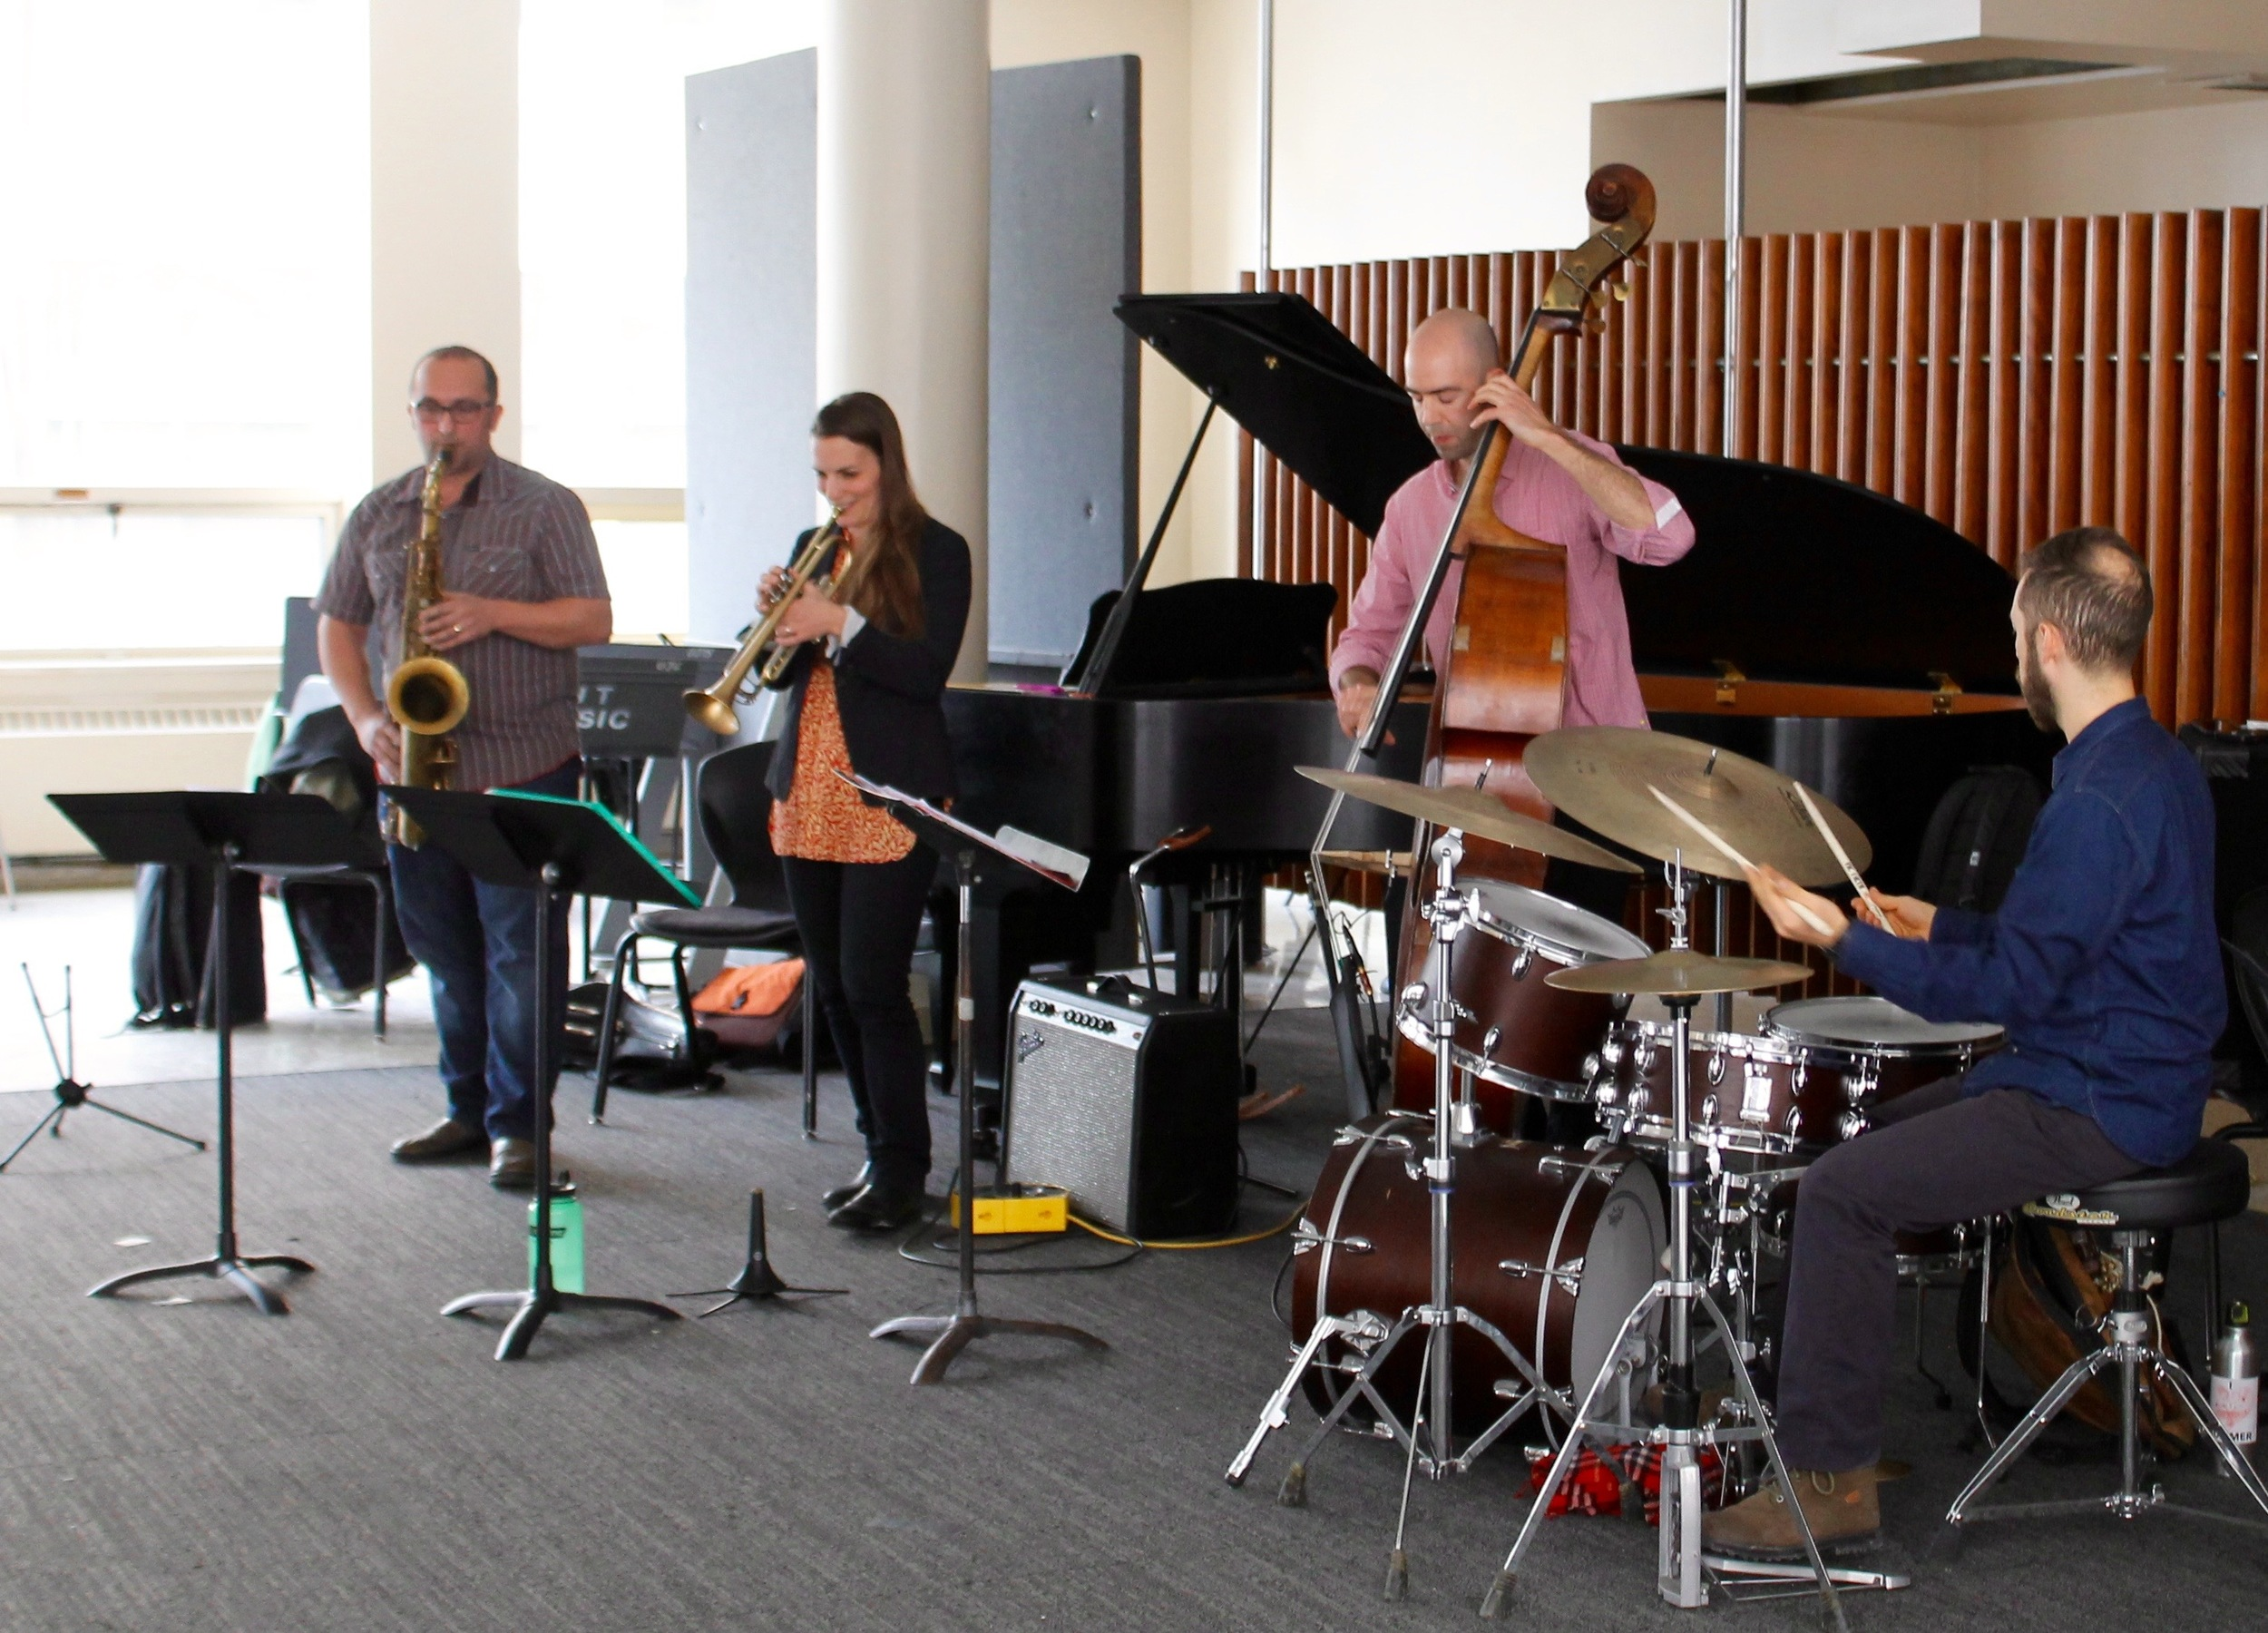 University of Toronto master class with jazz group Way North consisting of Petr Cancura on Saxophone, Rebecca Hennessy on Trumpet, Michael Herring on Bass, and Richie Barshay on Drums - Mar. 2016